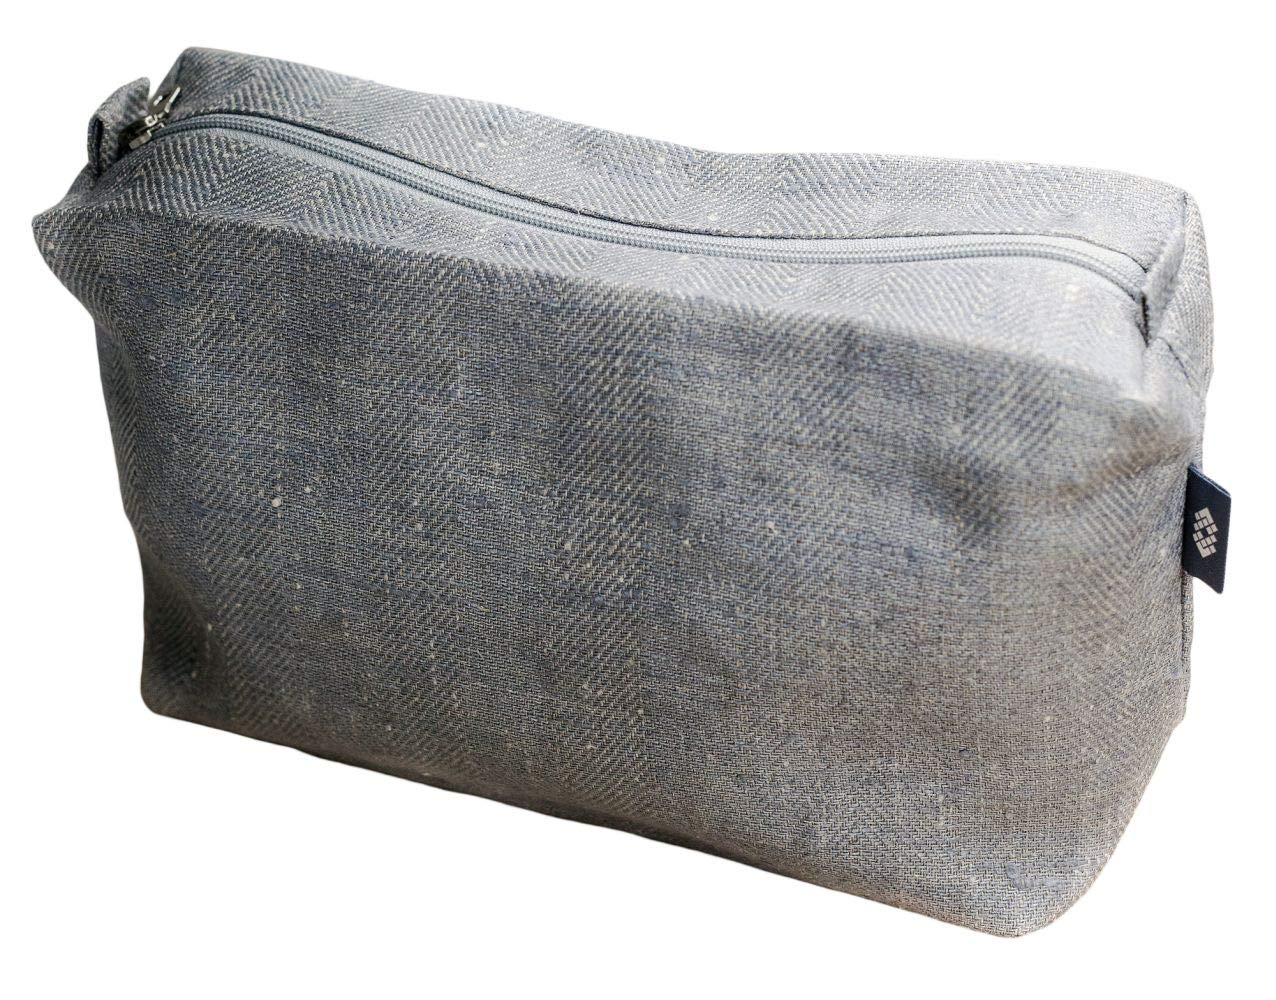 Large Canvas Toiletry Bag Gray - 100% Linen Travel Sack, ThingStore